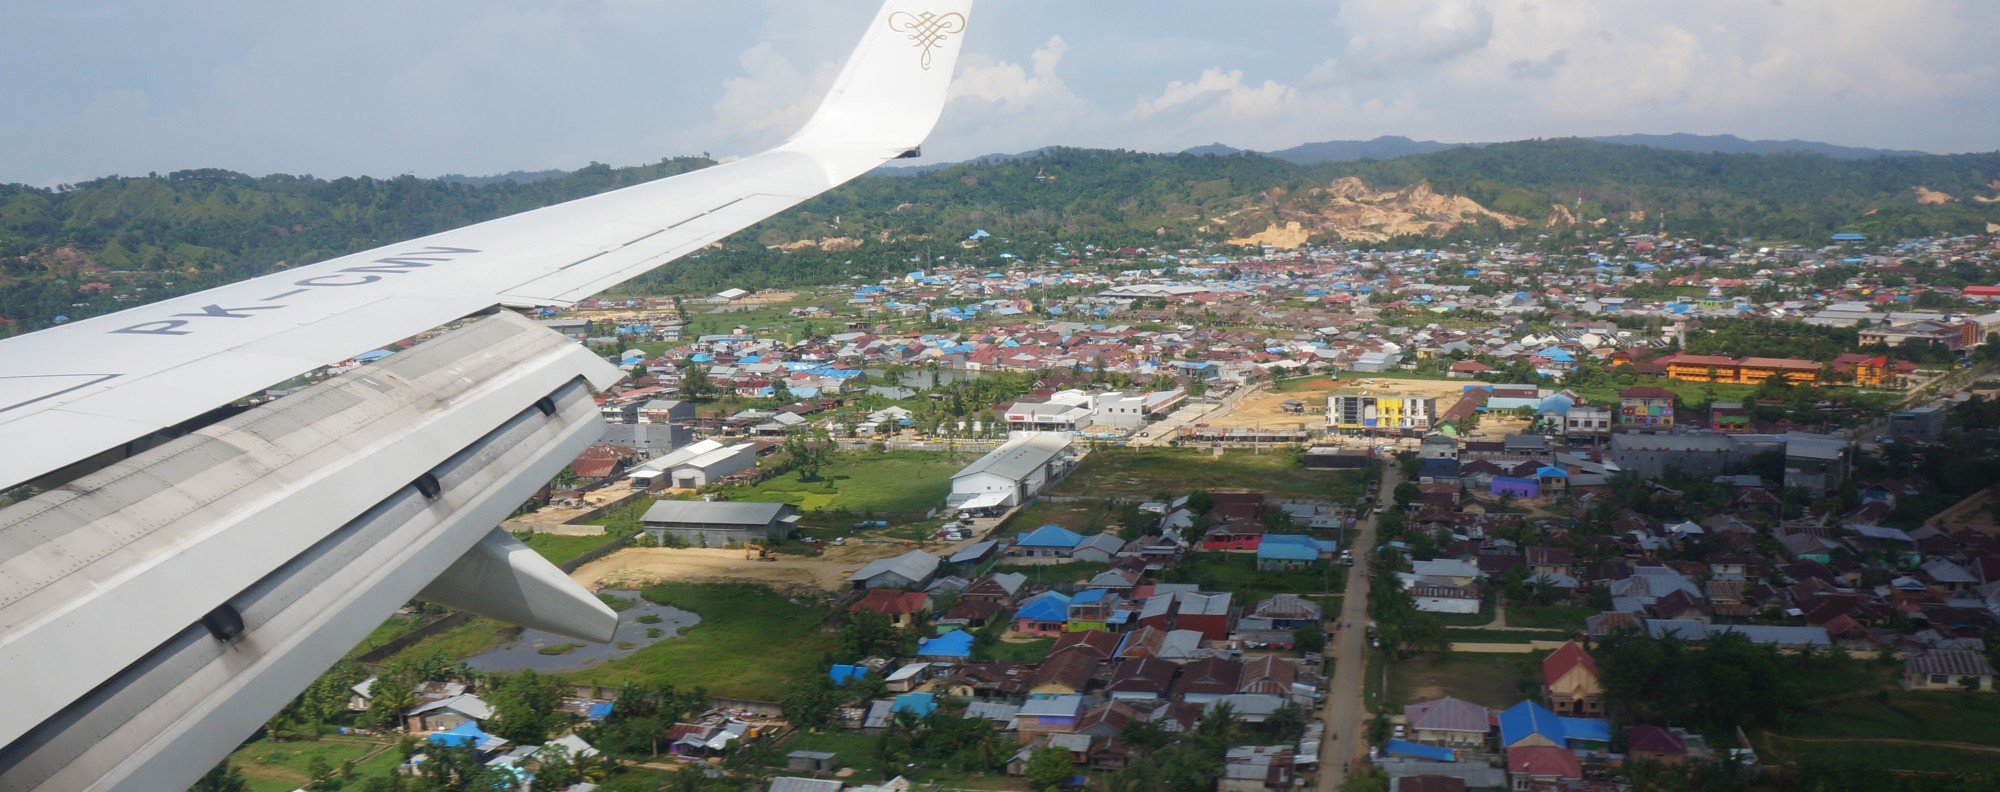 Sorong, Indonesia's boom town. Photo: Handout